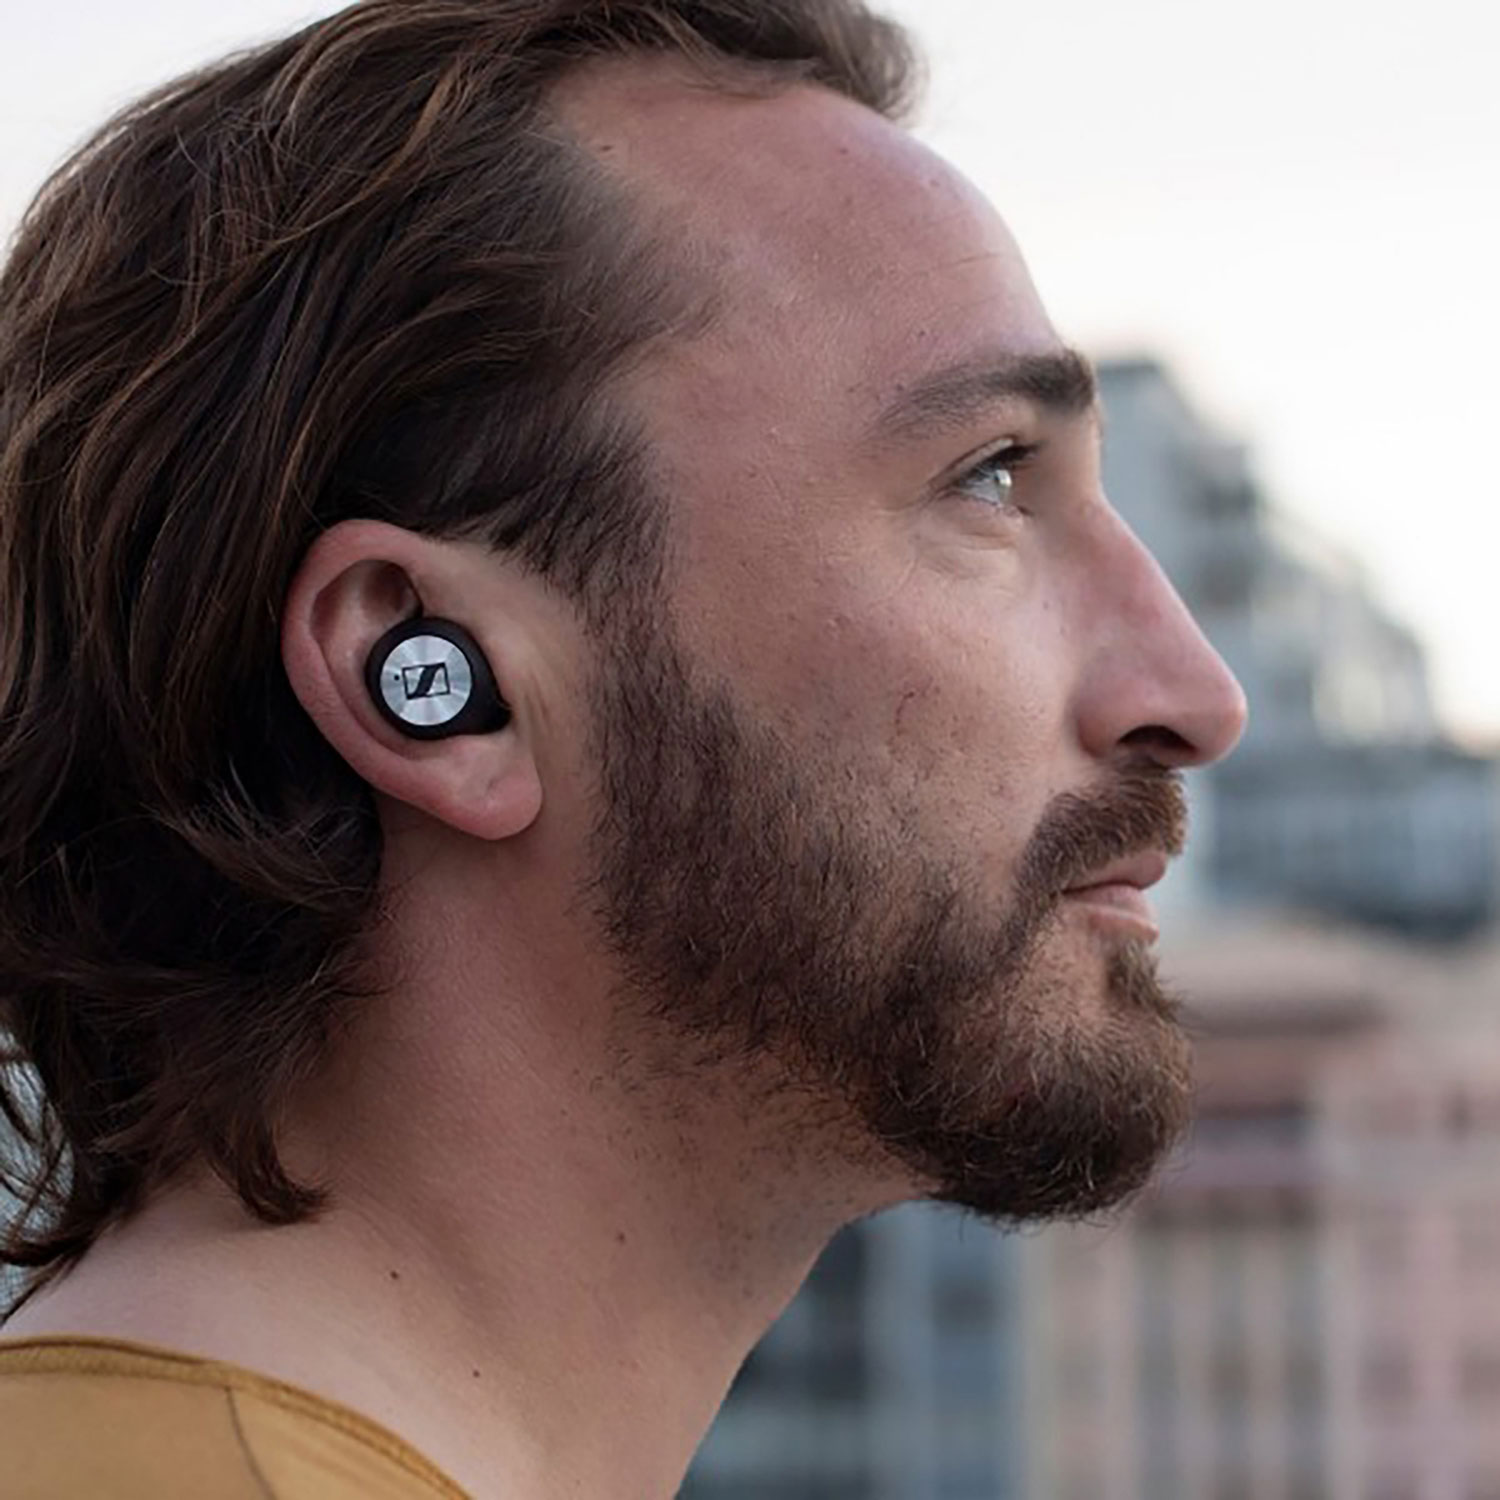 Sennheiser in-ear truly wireless